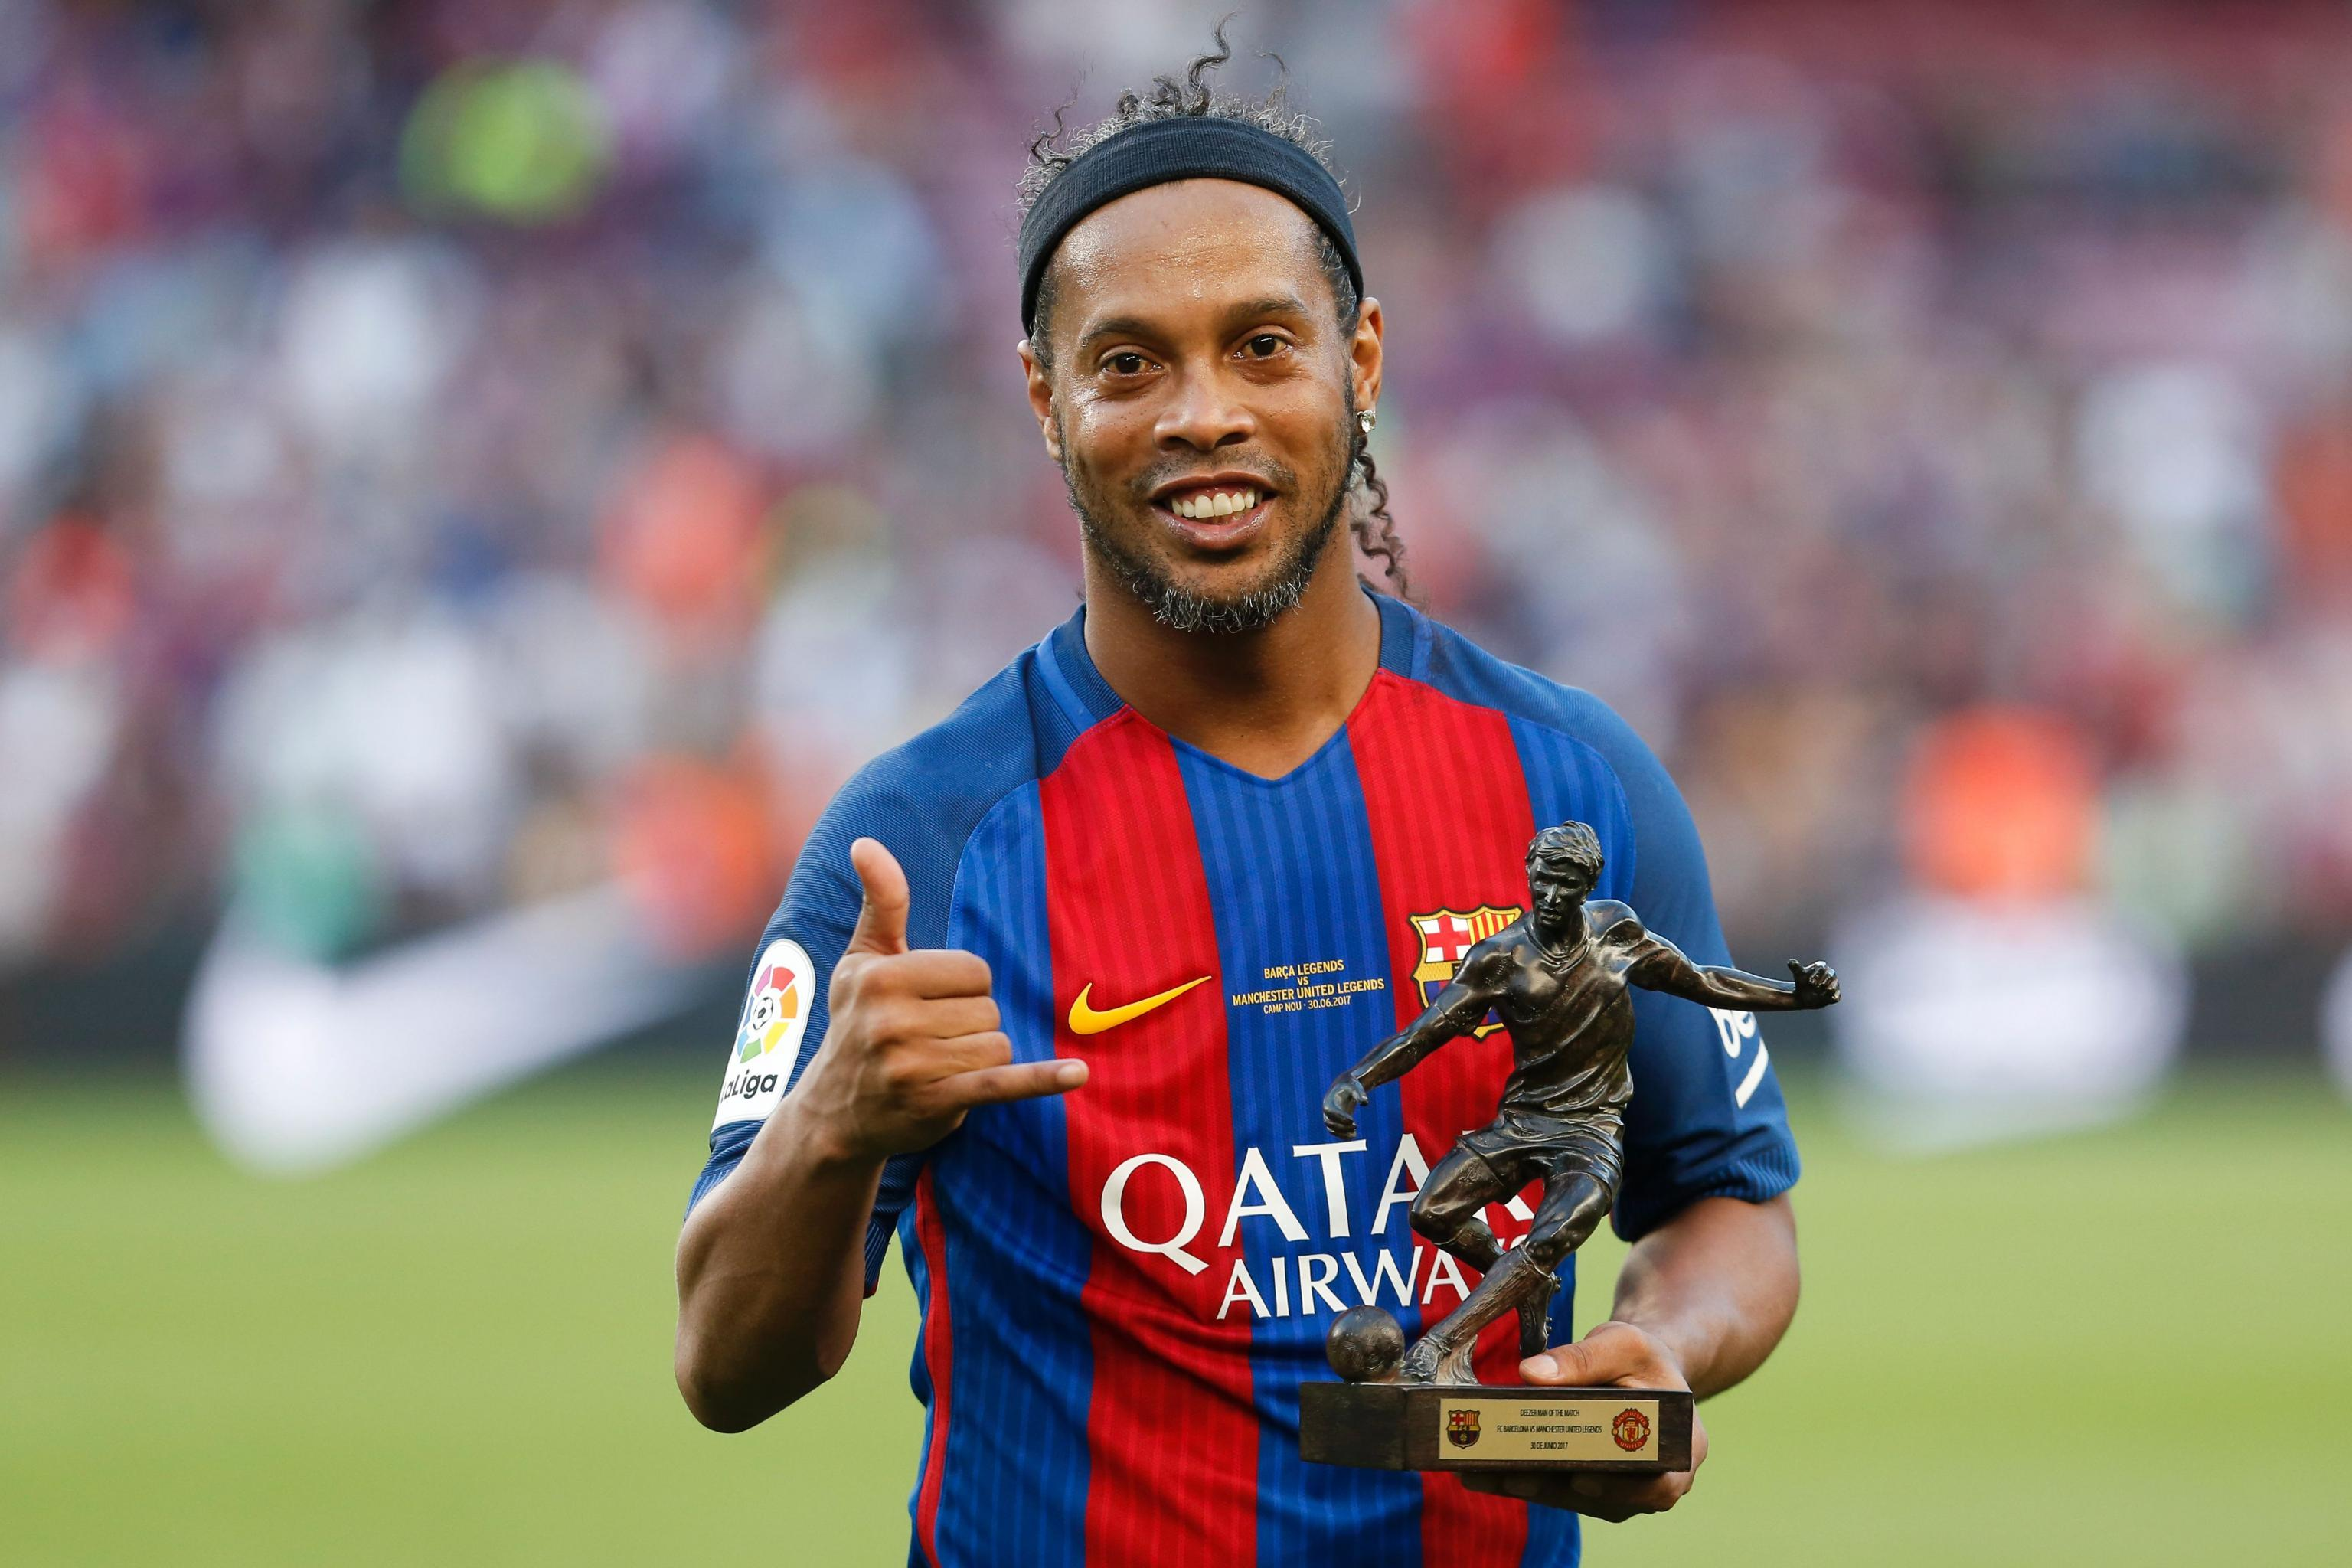 Report Barcelona To Limit Ronaldinho Rivaldo Role After Jair Bolsonaro Support Bleacher Report Latest News Videos And Highlights